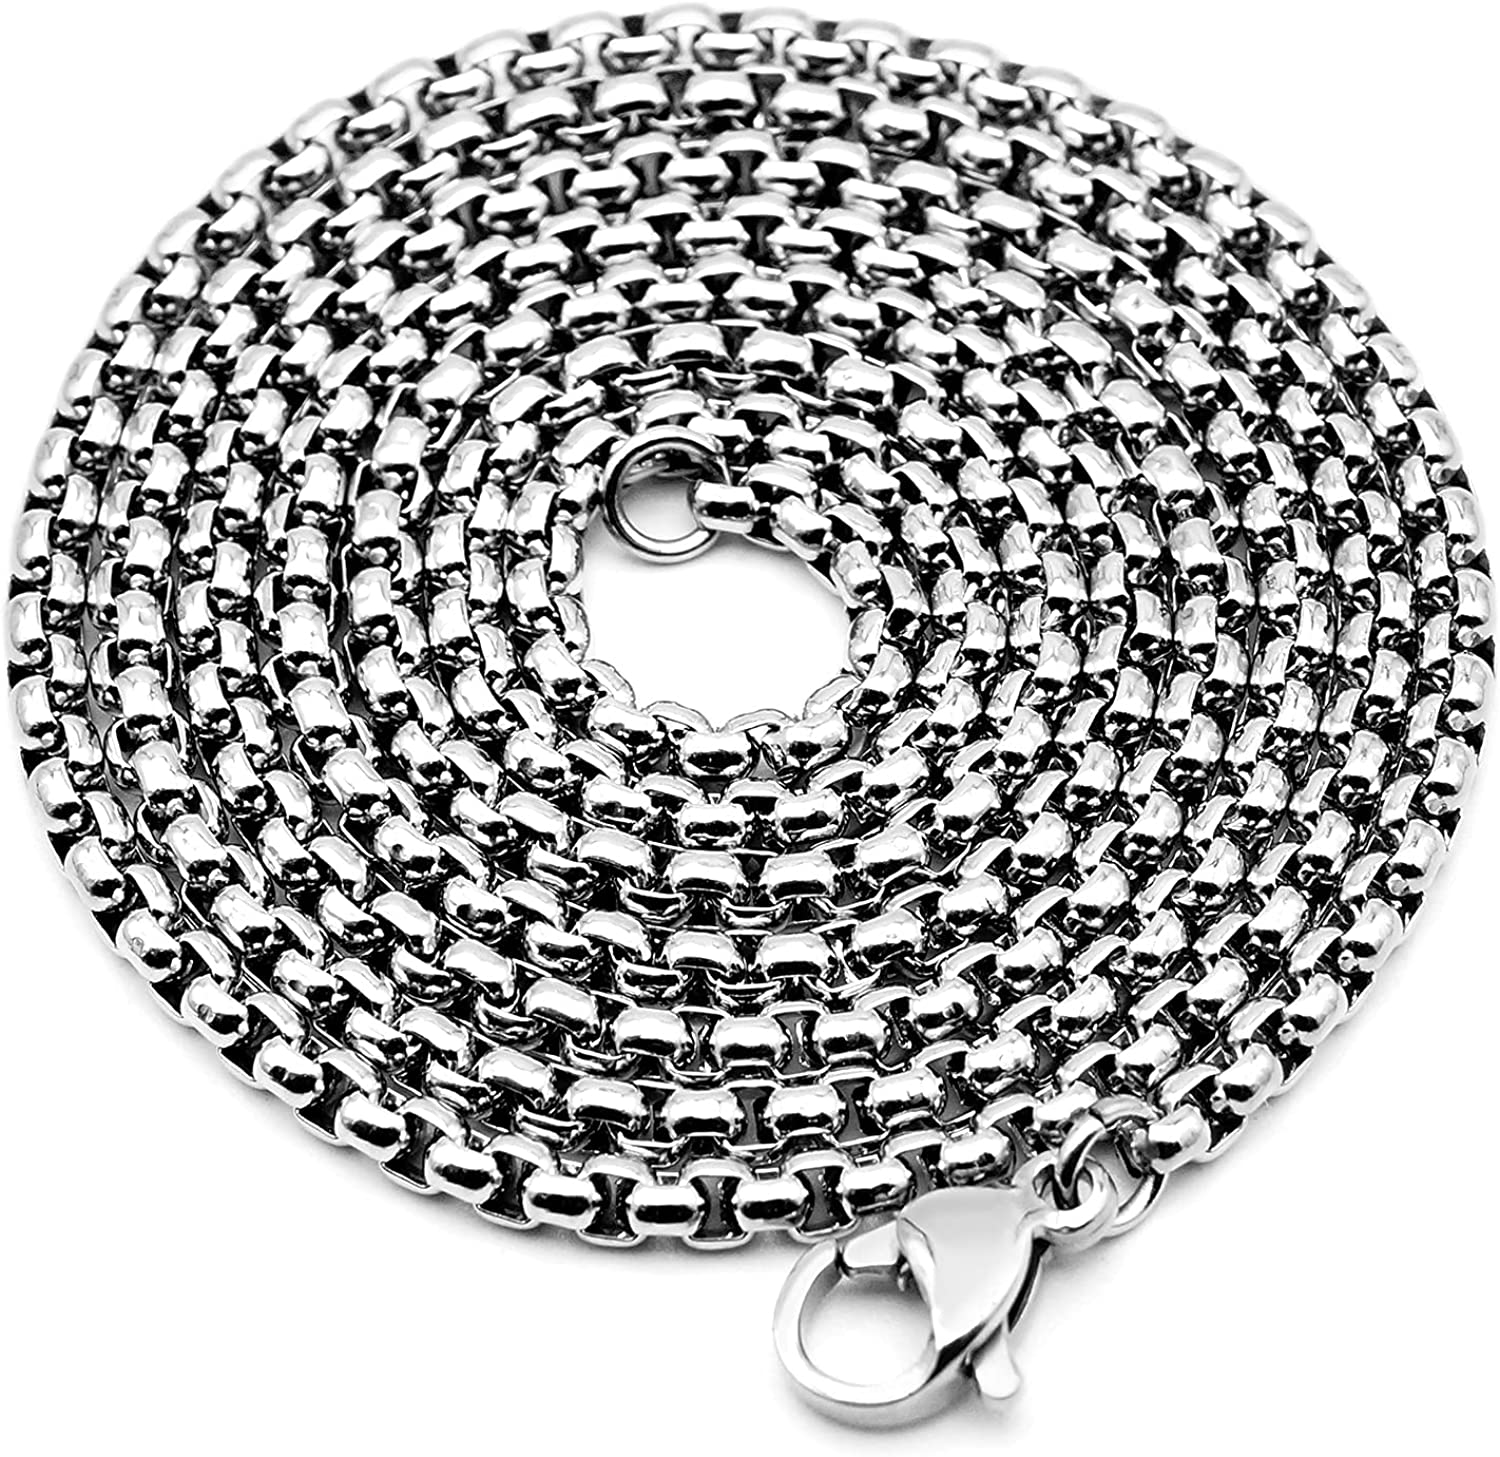 VENICEBEE Best Stainless Steel Chain Medical Grade 316L Surgical Metal Long Venetian Link Necklace 28